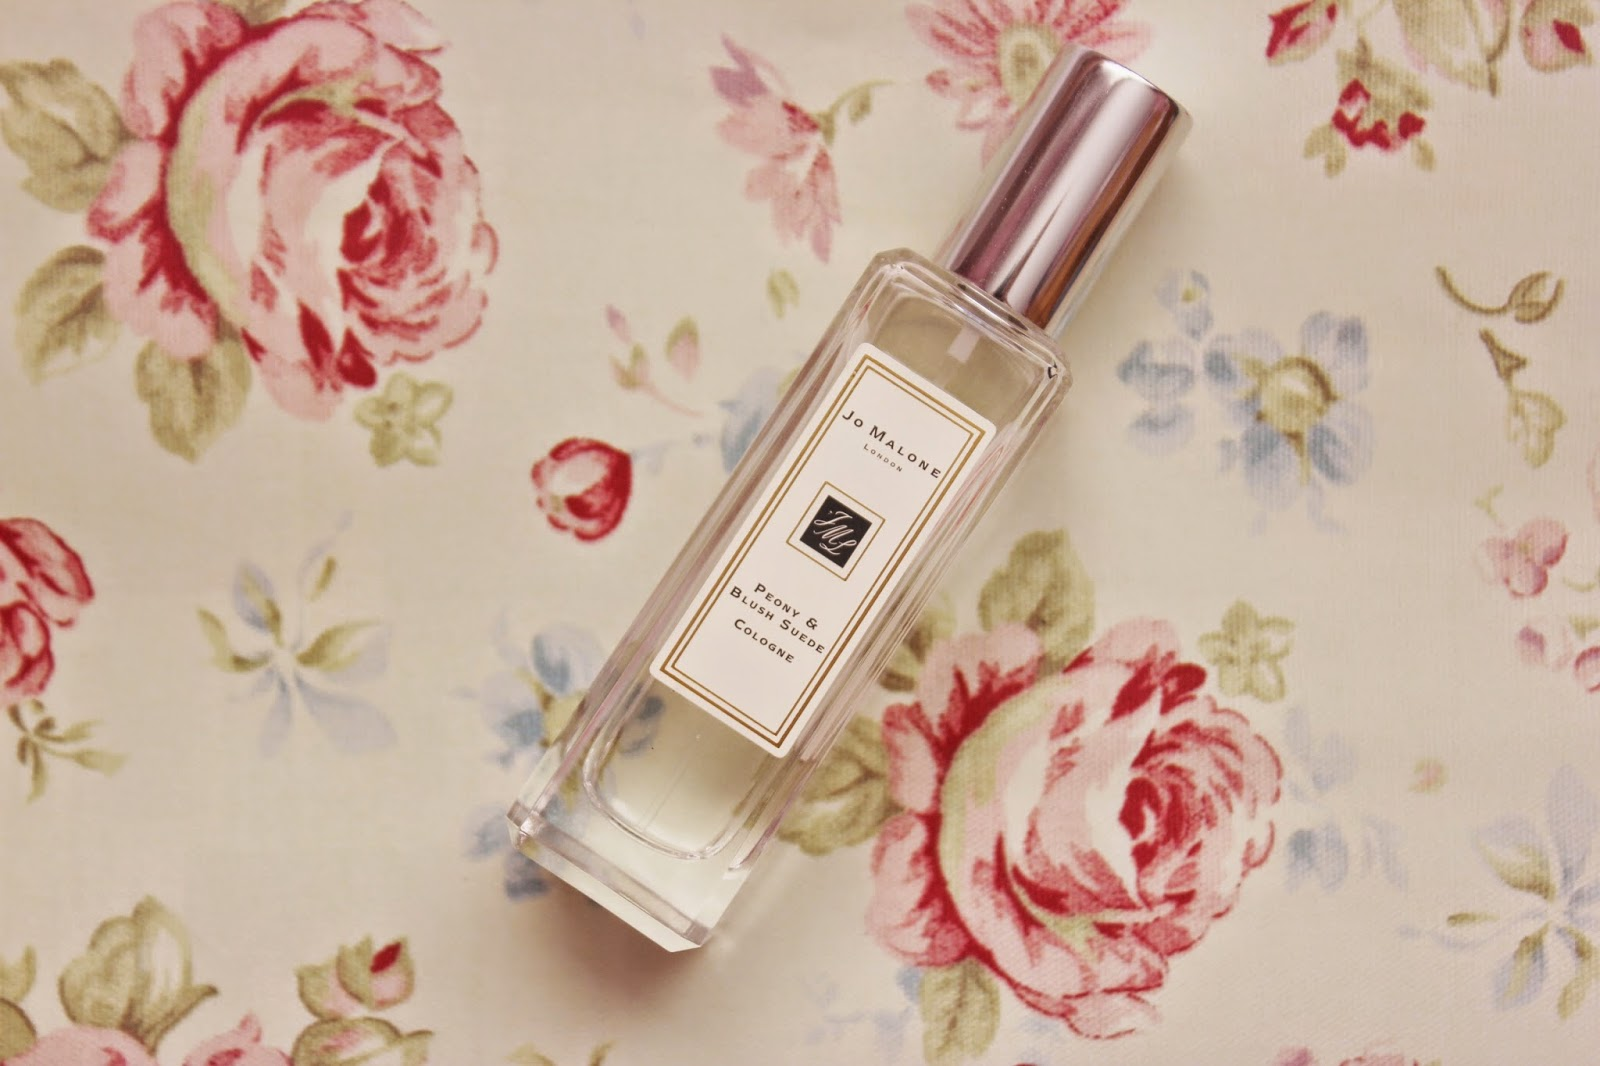 http://englishroses89.blogspot.co.uk/2014/08/jo-malone-peony-blush-suede.html